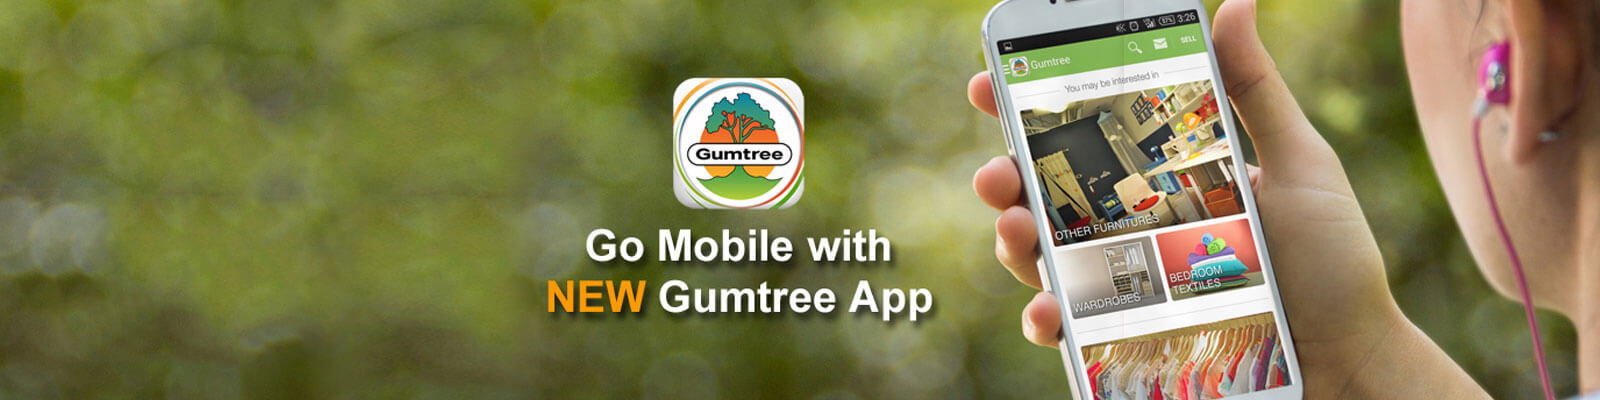 app like gumtree